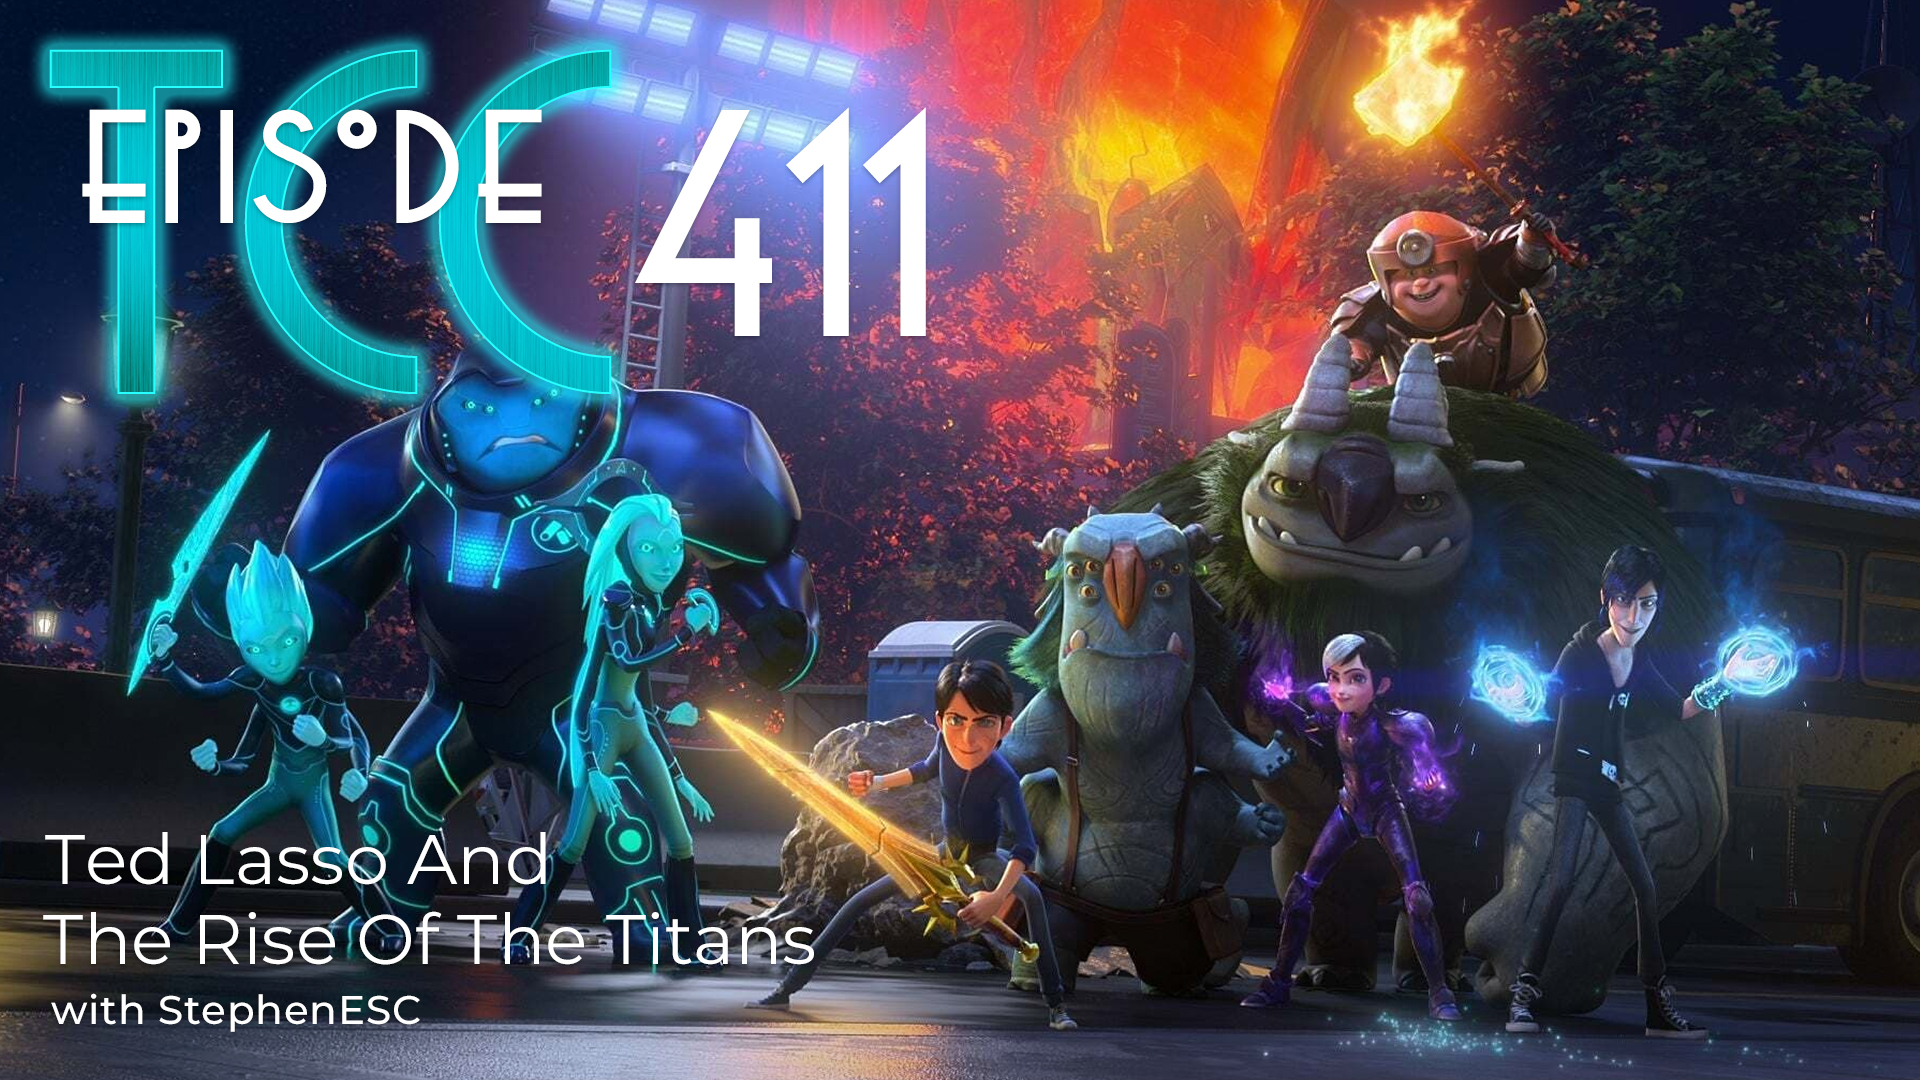 The Citadel Cafe 411: Ted Lasso And The Rise Of The Titans